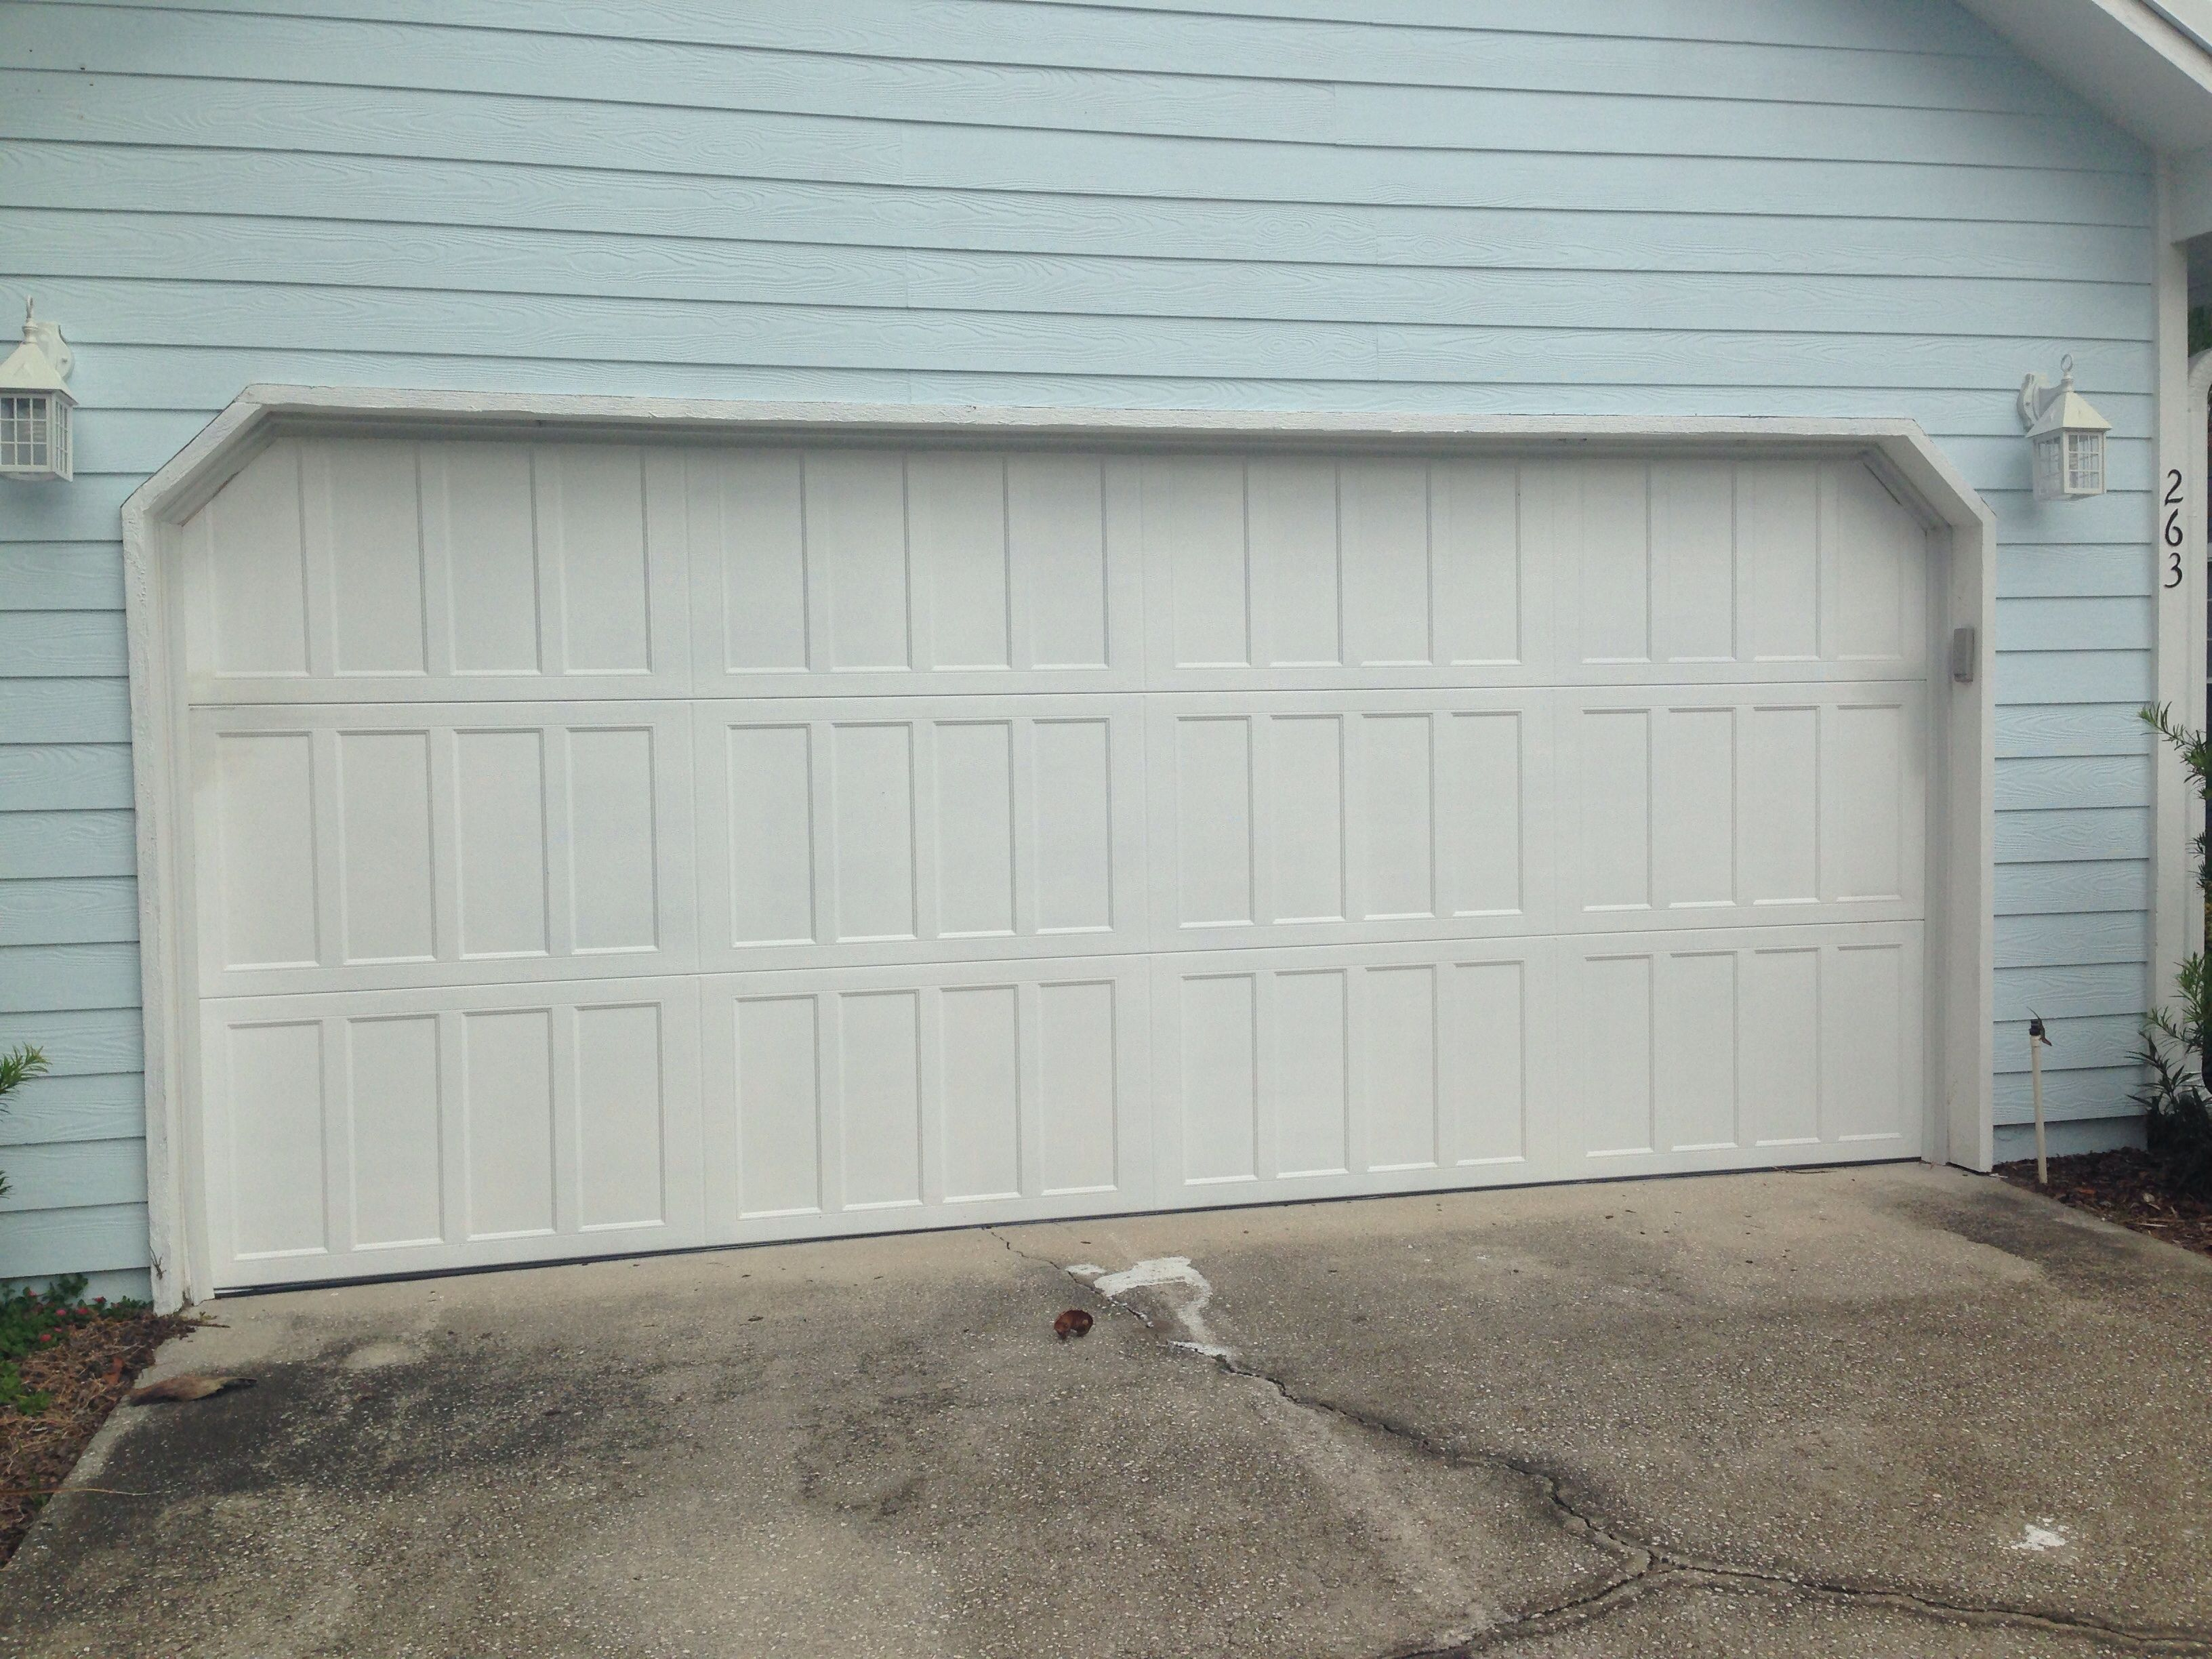 Ordinaire Amarr Classica Northampton Closed Square In True White Garage Door  Installed On A Home Remodel In Jacksonville Beach